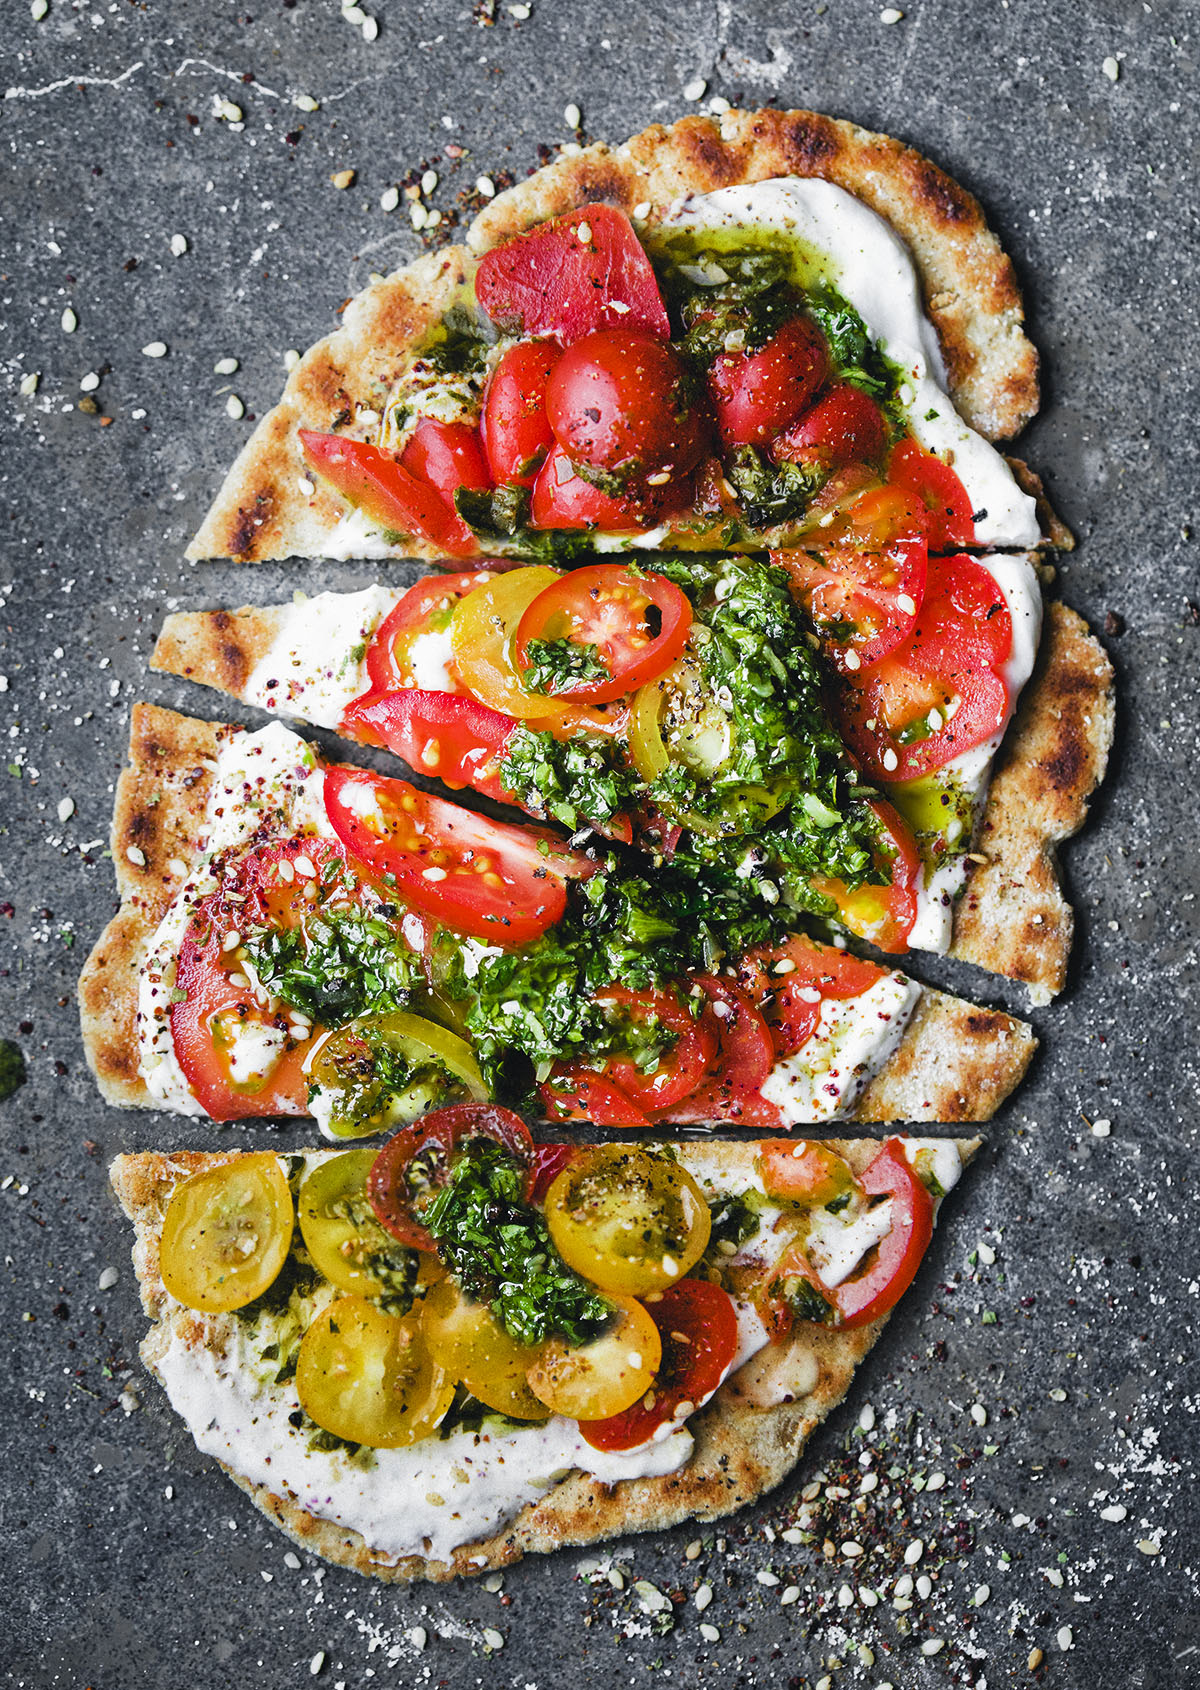 Photo of Oat & Yogurt Flatbread with Green Sauce and Tomatoes